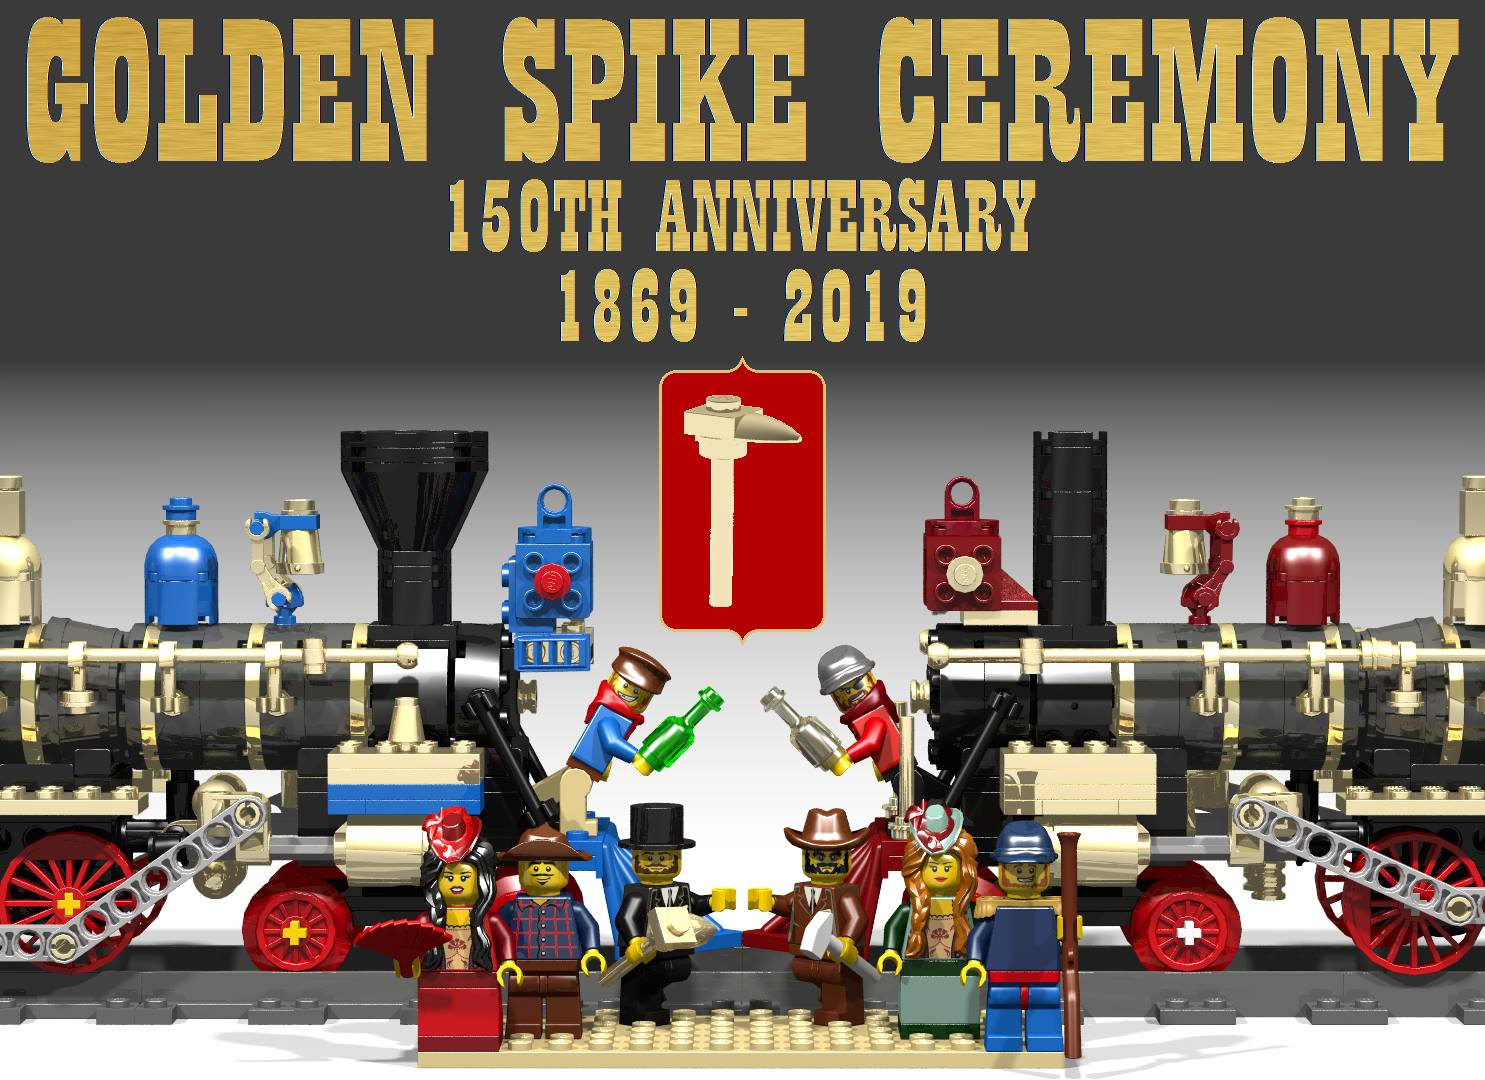 Golden Spike Ceremony Lego replica, contest submission by Jack Little | Photo Courtesy of Jack Little, St. George News